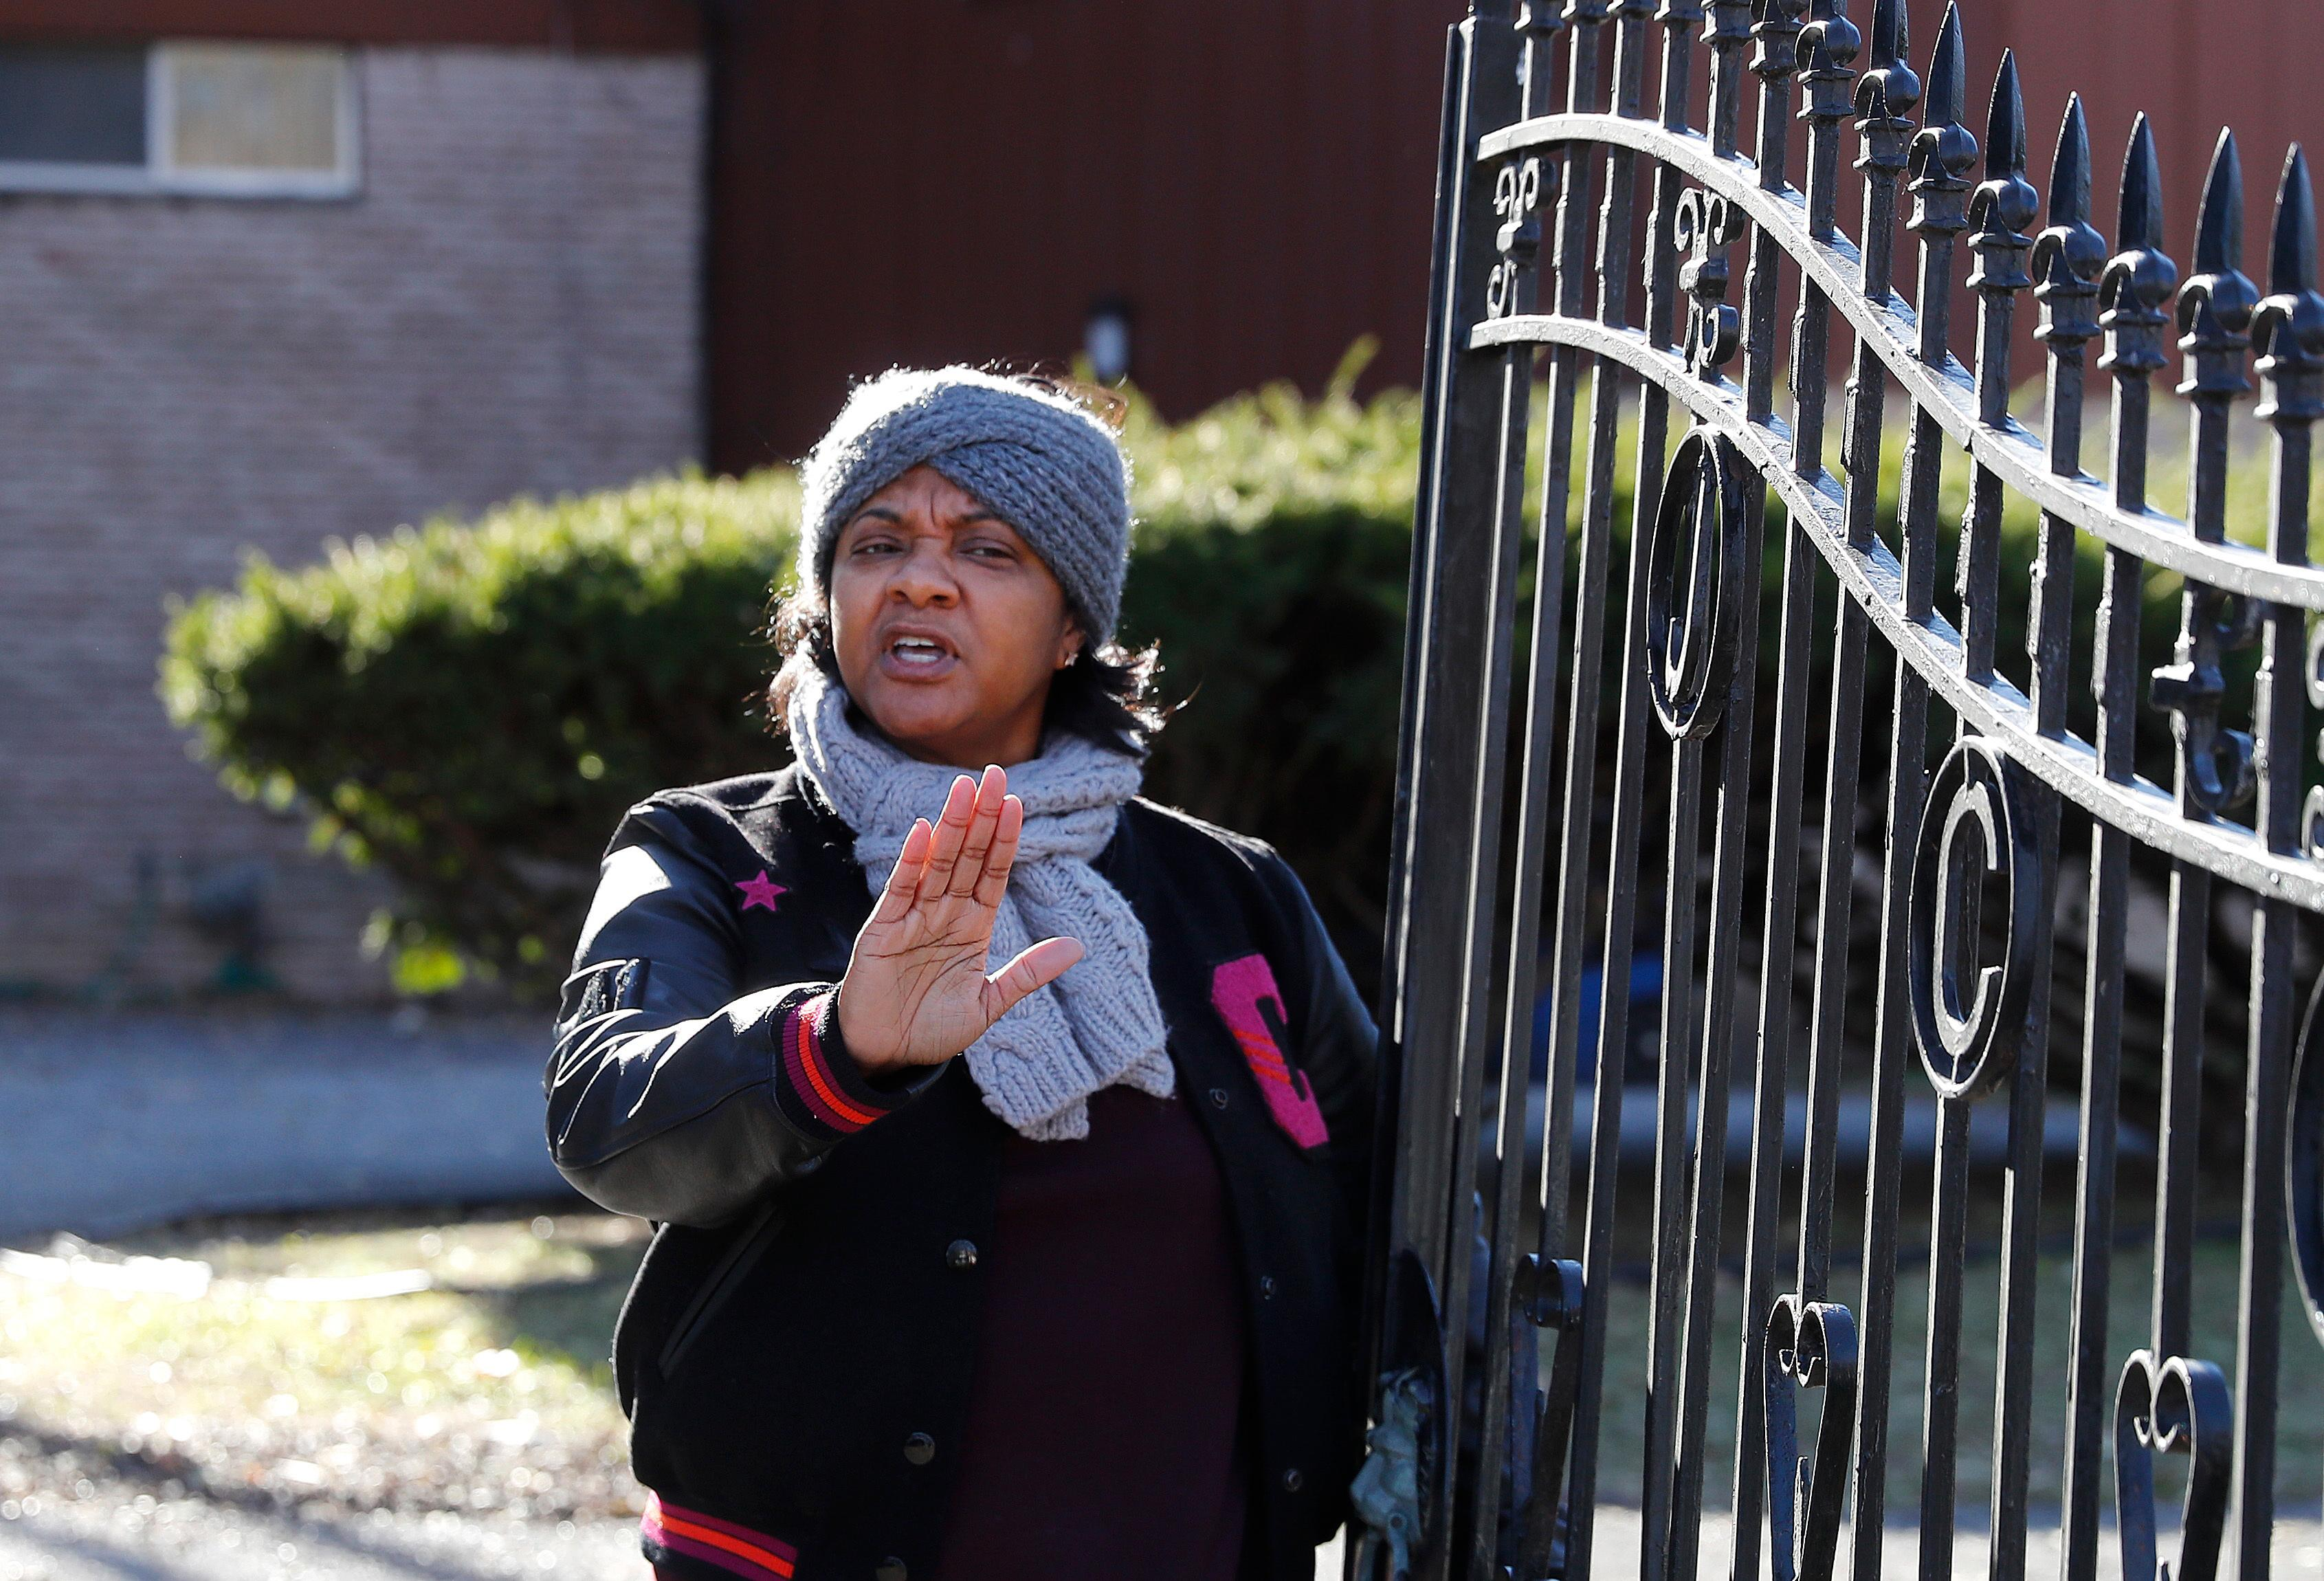 Monica Conyers, wife of Rep. John Conyers, D-Mich., speaks to the media outside her home Wednesday, Nov. 29, 2017, in Detroit. Rep. Conyers is being pressured by some in Washington to resign. Rep. Conyers recently stepped down from his post as top Democrat on the House Judiciary Committee after facing allegations of sexual harassment by former staffers. (AP Photo/Paul Sancya)